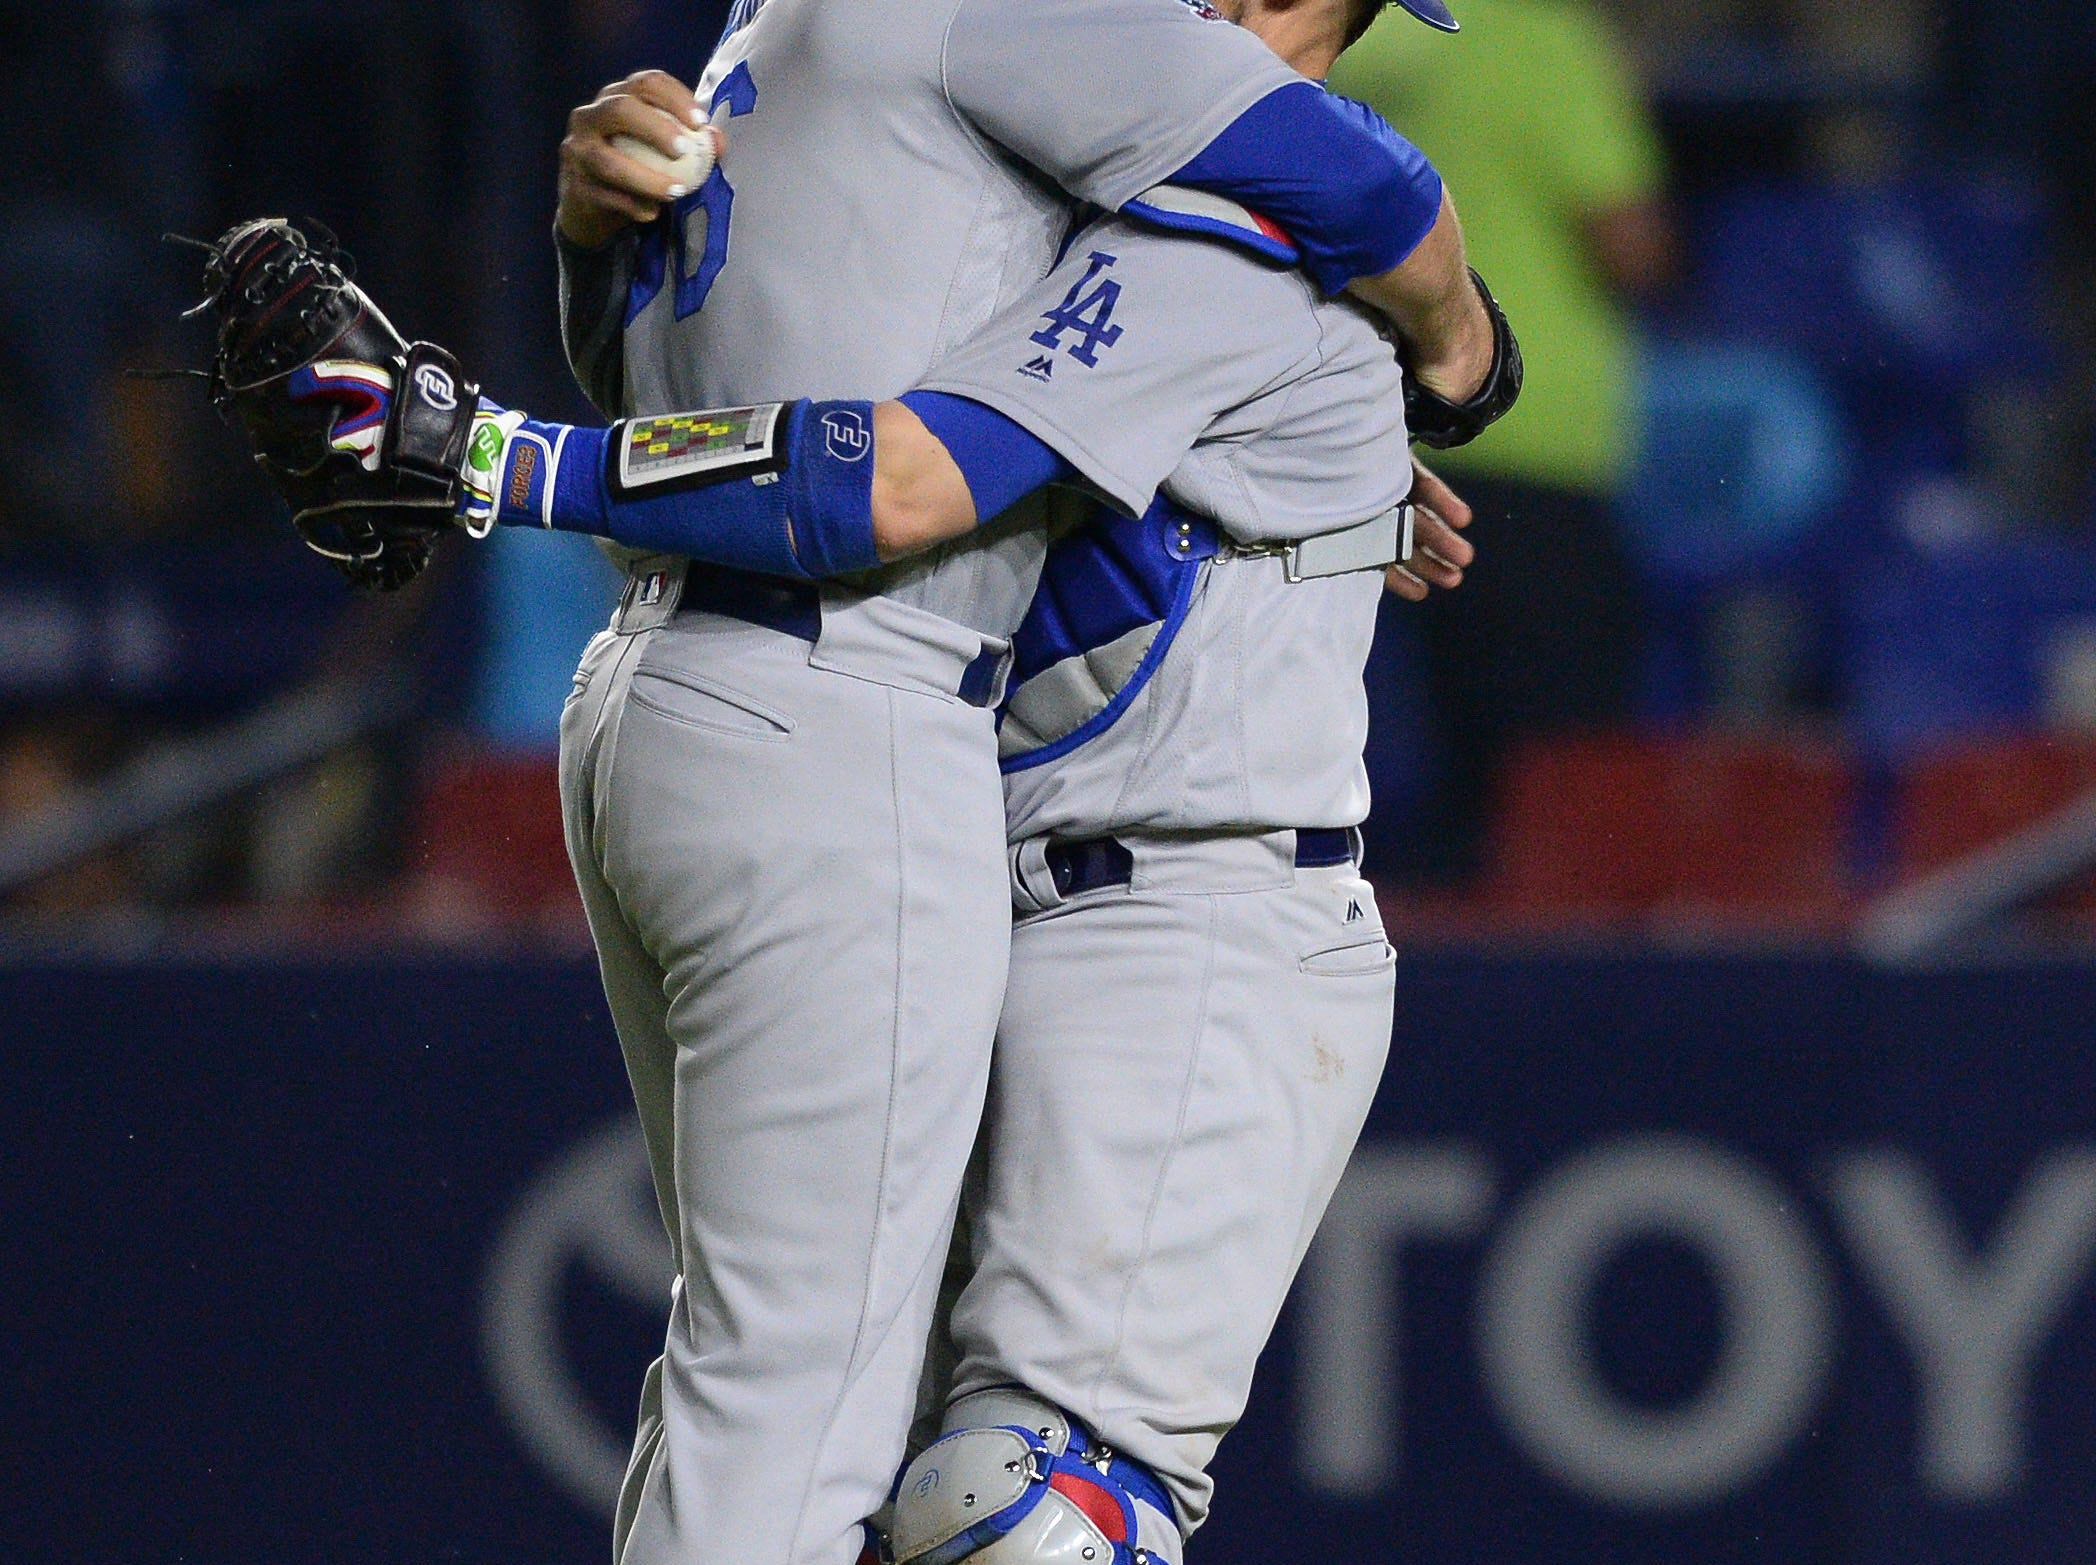 May 4: Los Angeles Dodgers relief pitcher Adam Liberatore (left) and catcher Yasmani Grandal (right) celebrate after recording the last out of a combined no-hitter against the San Diego Padres at Estadio de Beisbol Monterrey.